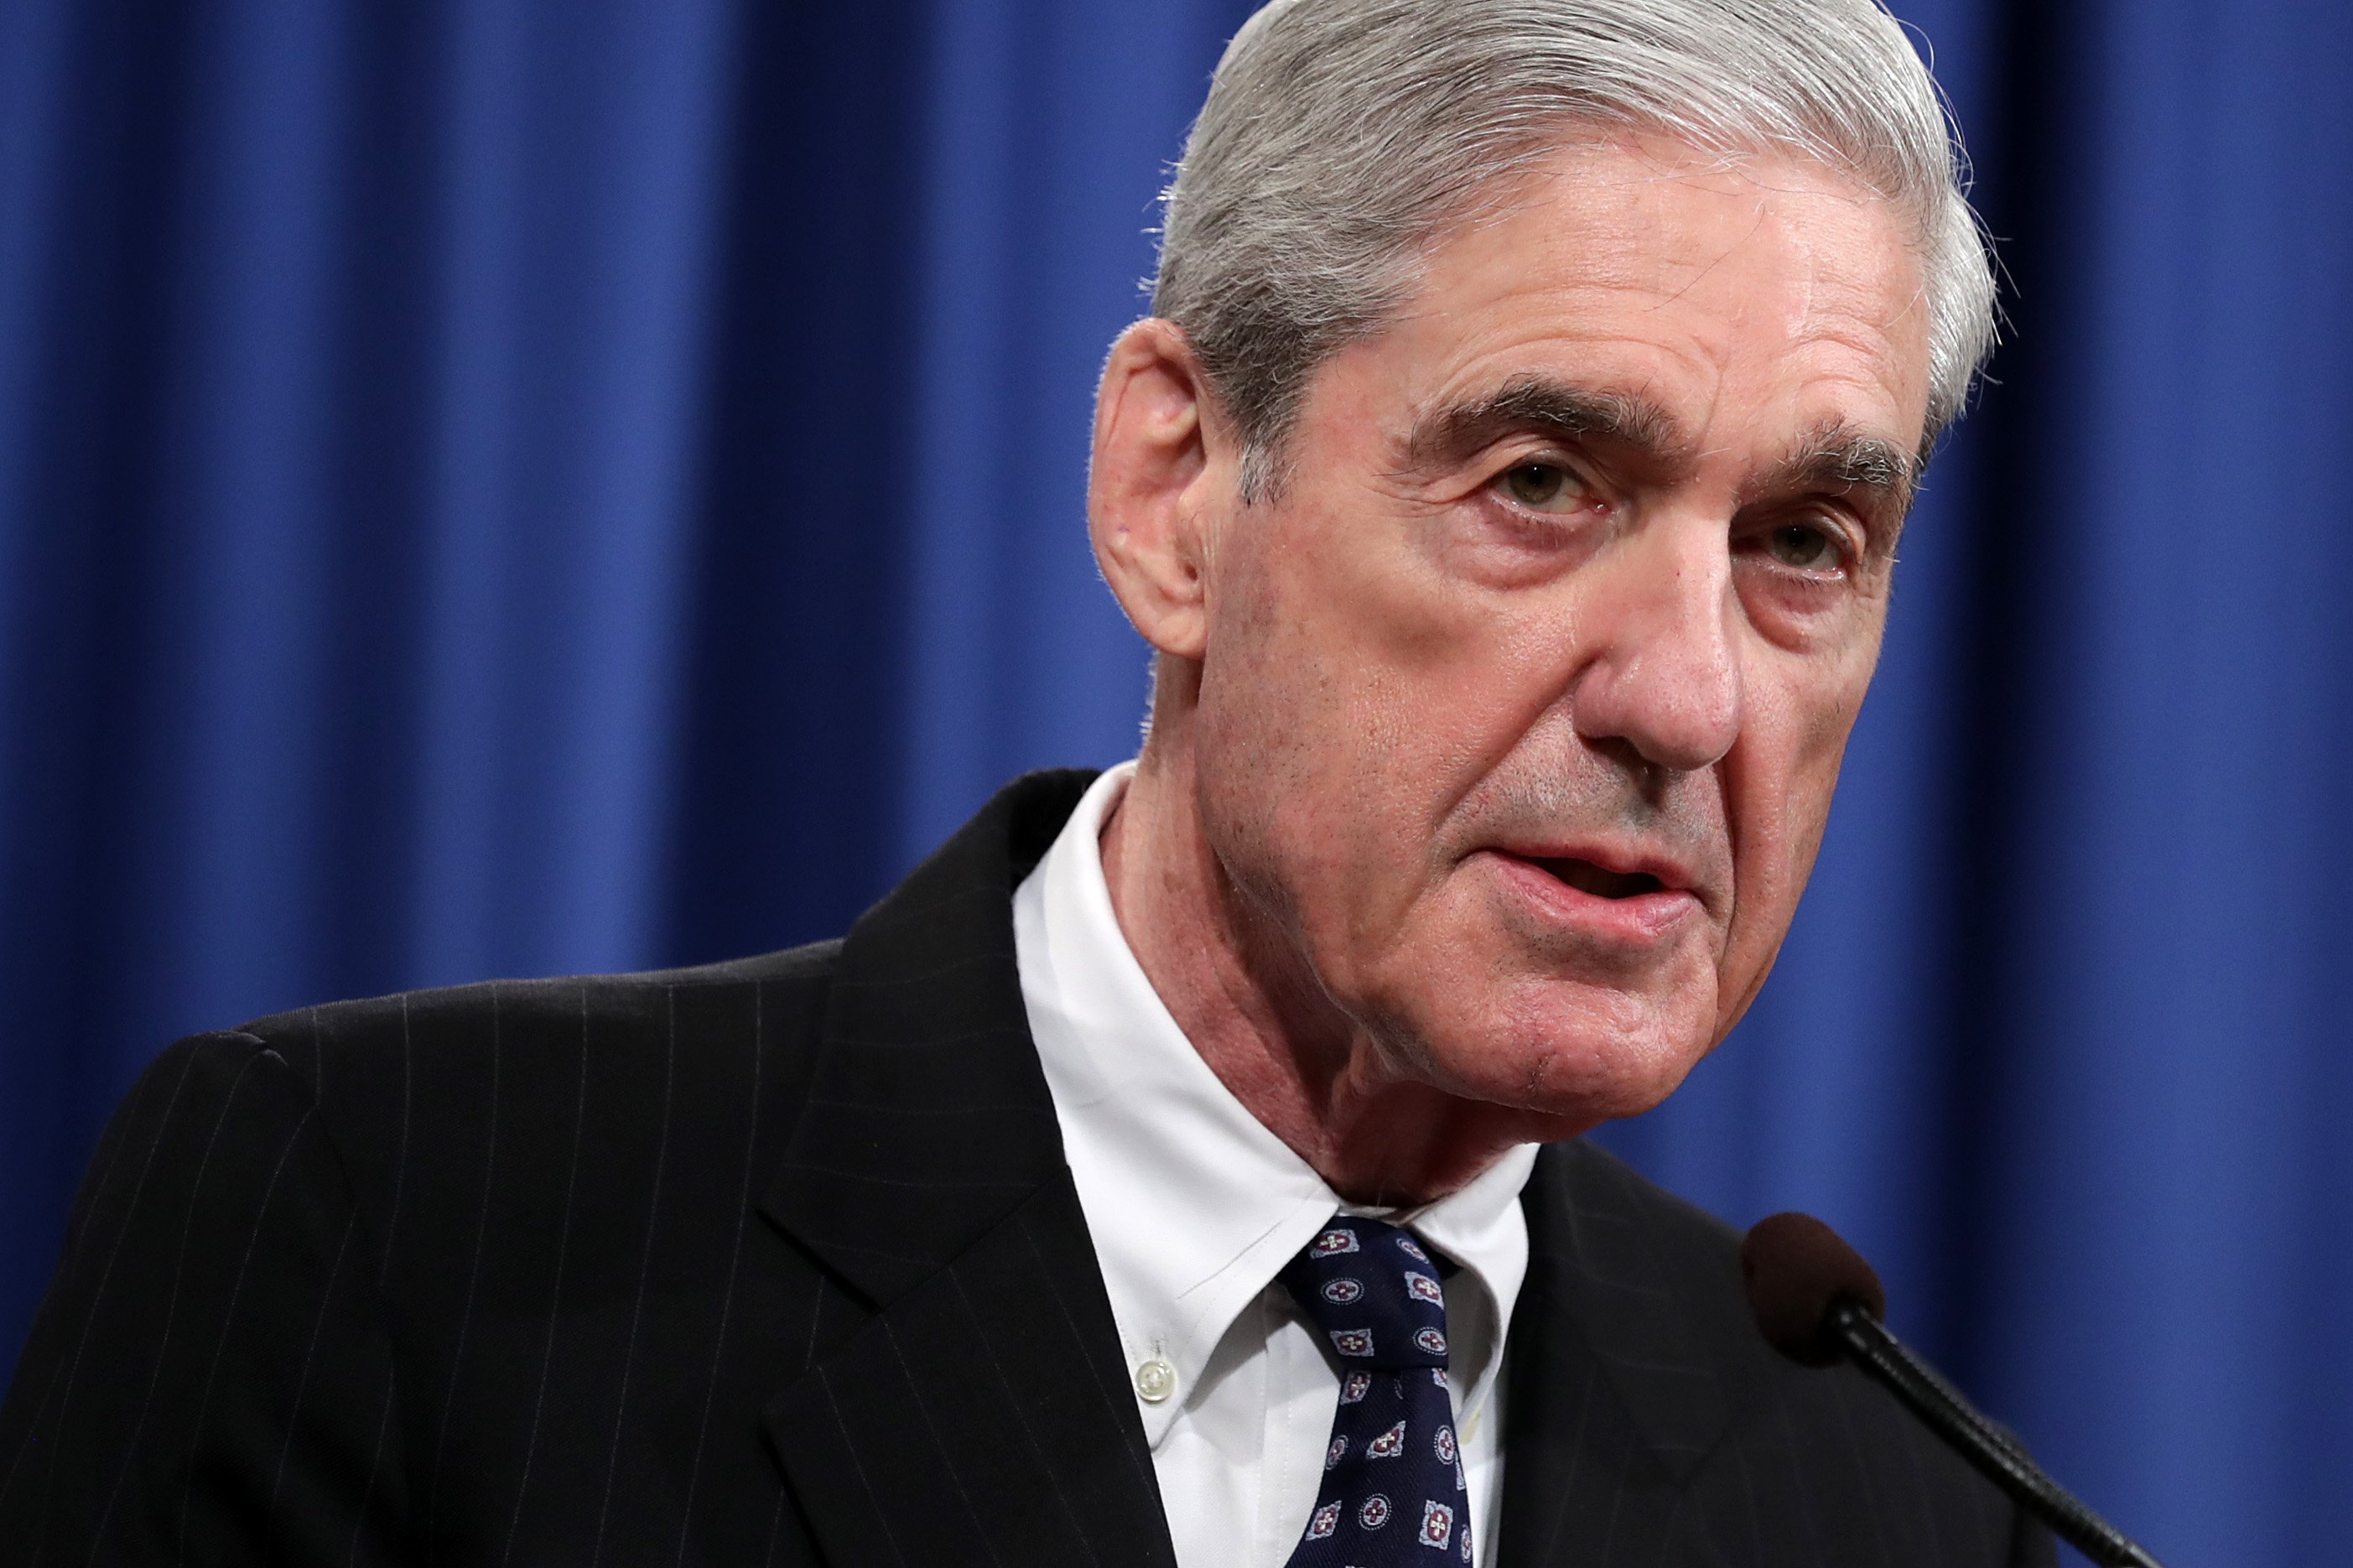 How to watch the Mueller testimony: What to know about the time, date and format